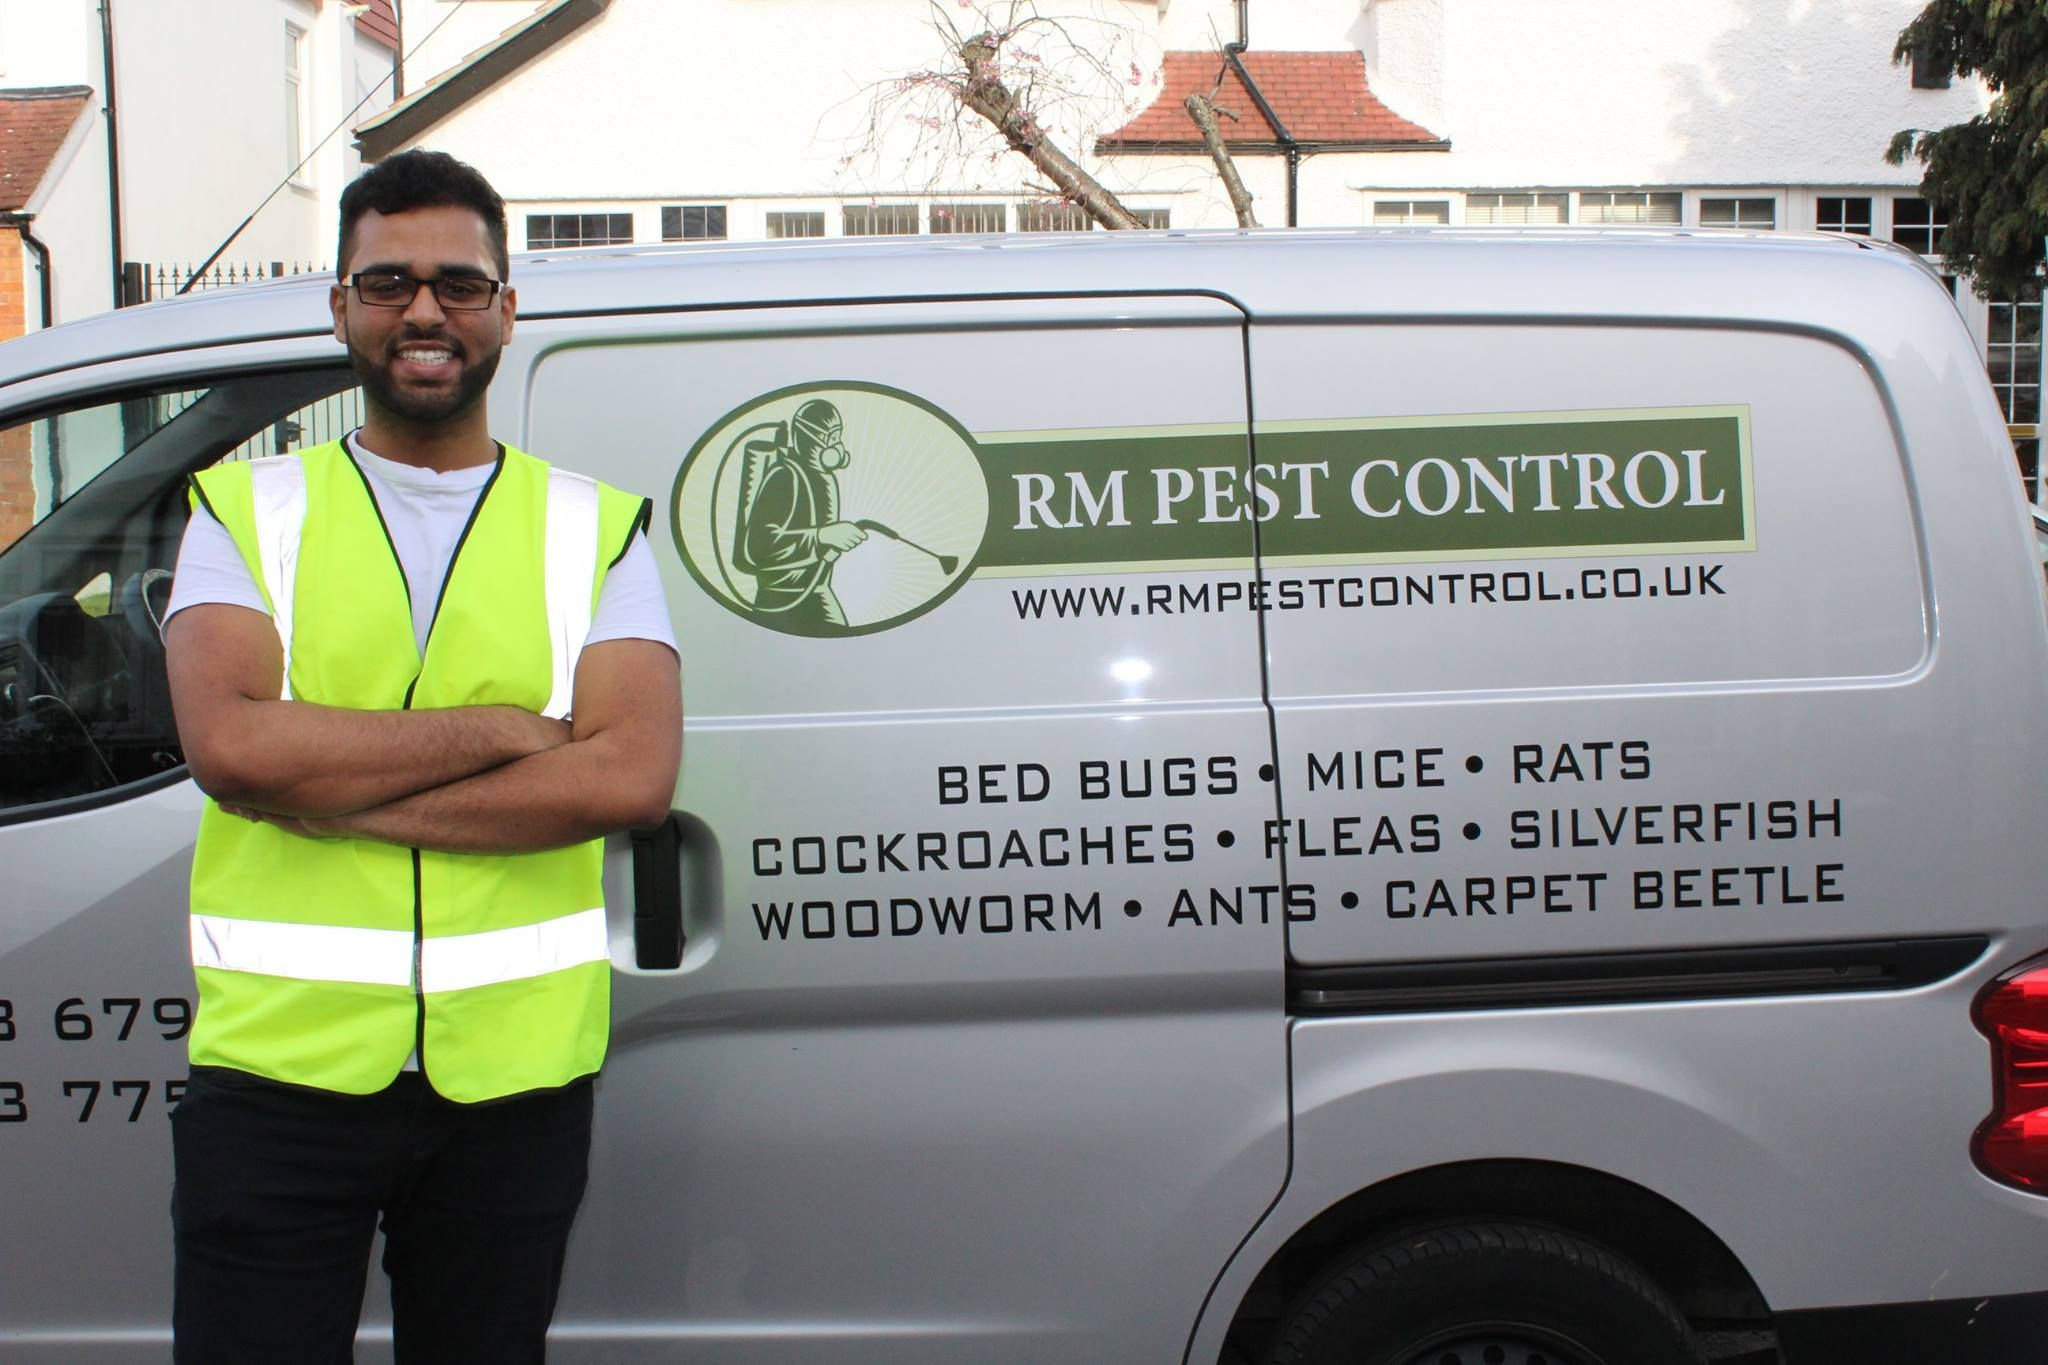 Rmpestcontrol Co Uk Is One Of The Best Low Cost Pest Control